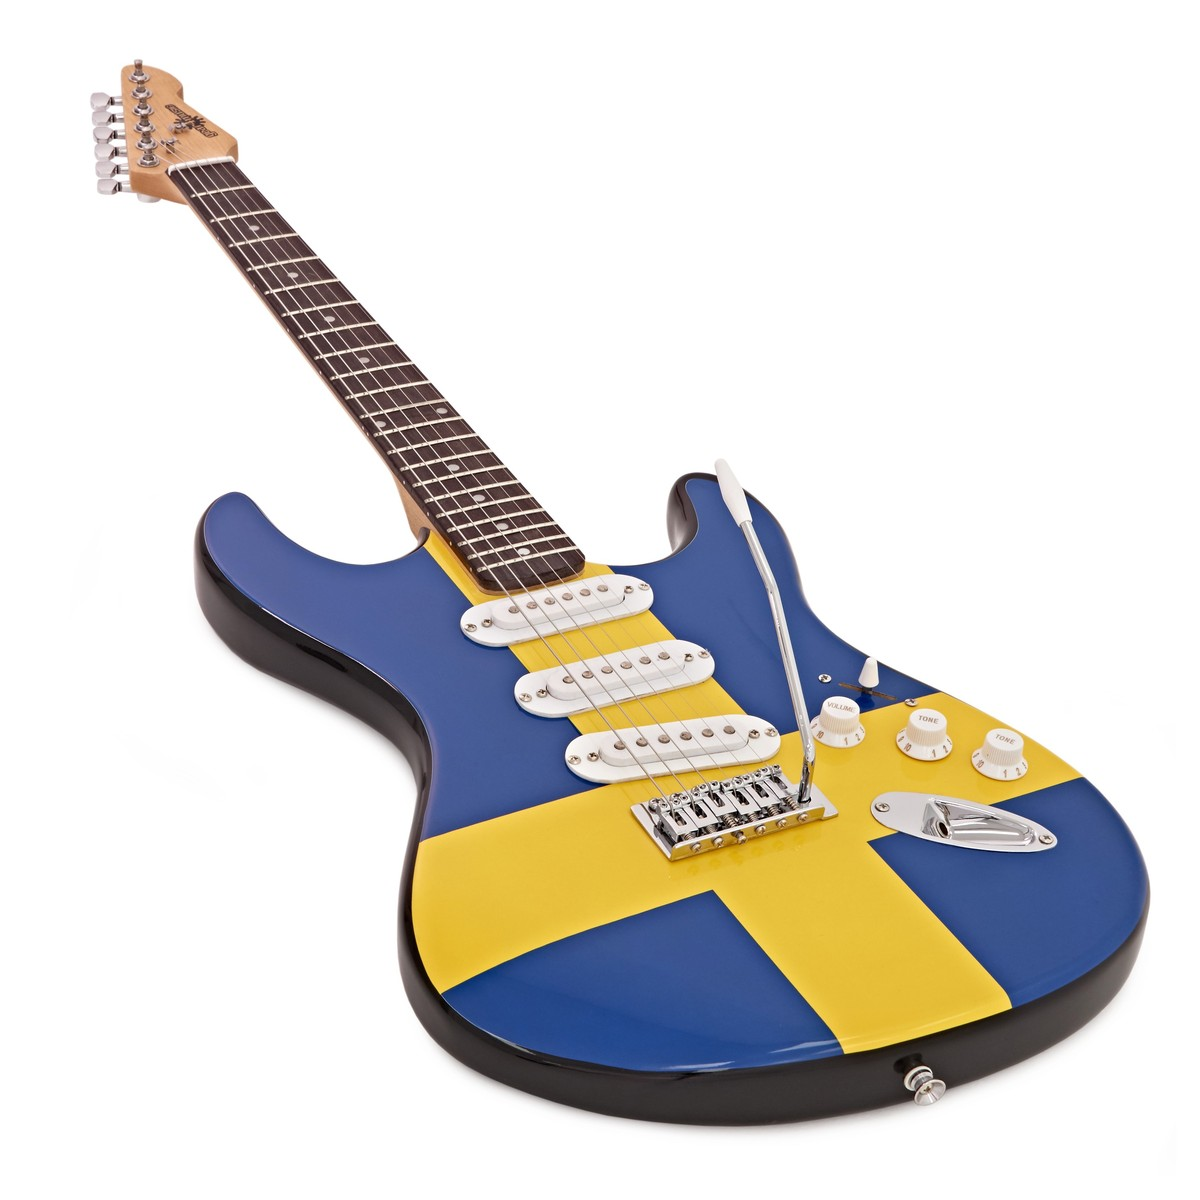 la electric guitar amp pack swedish flag at. Black Bedroom Furniture Sets. Home Design Ideas